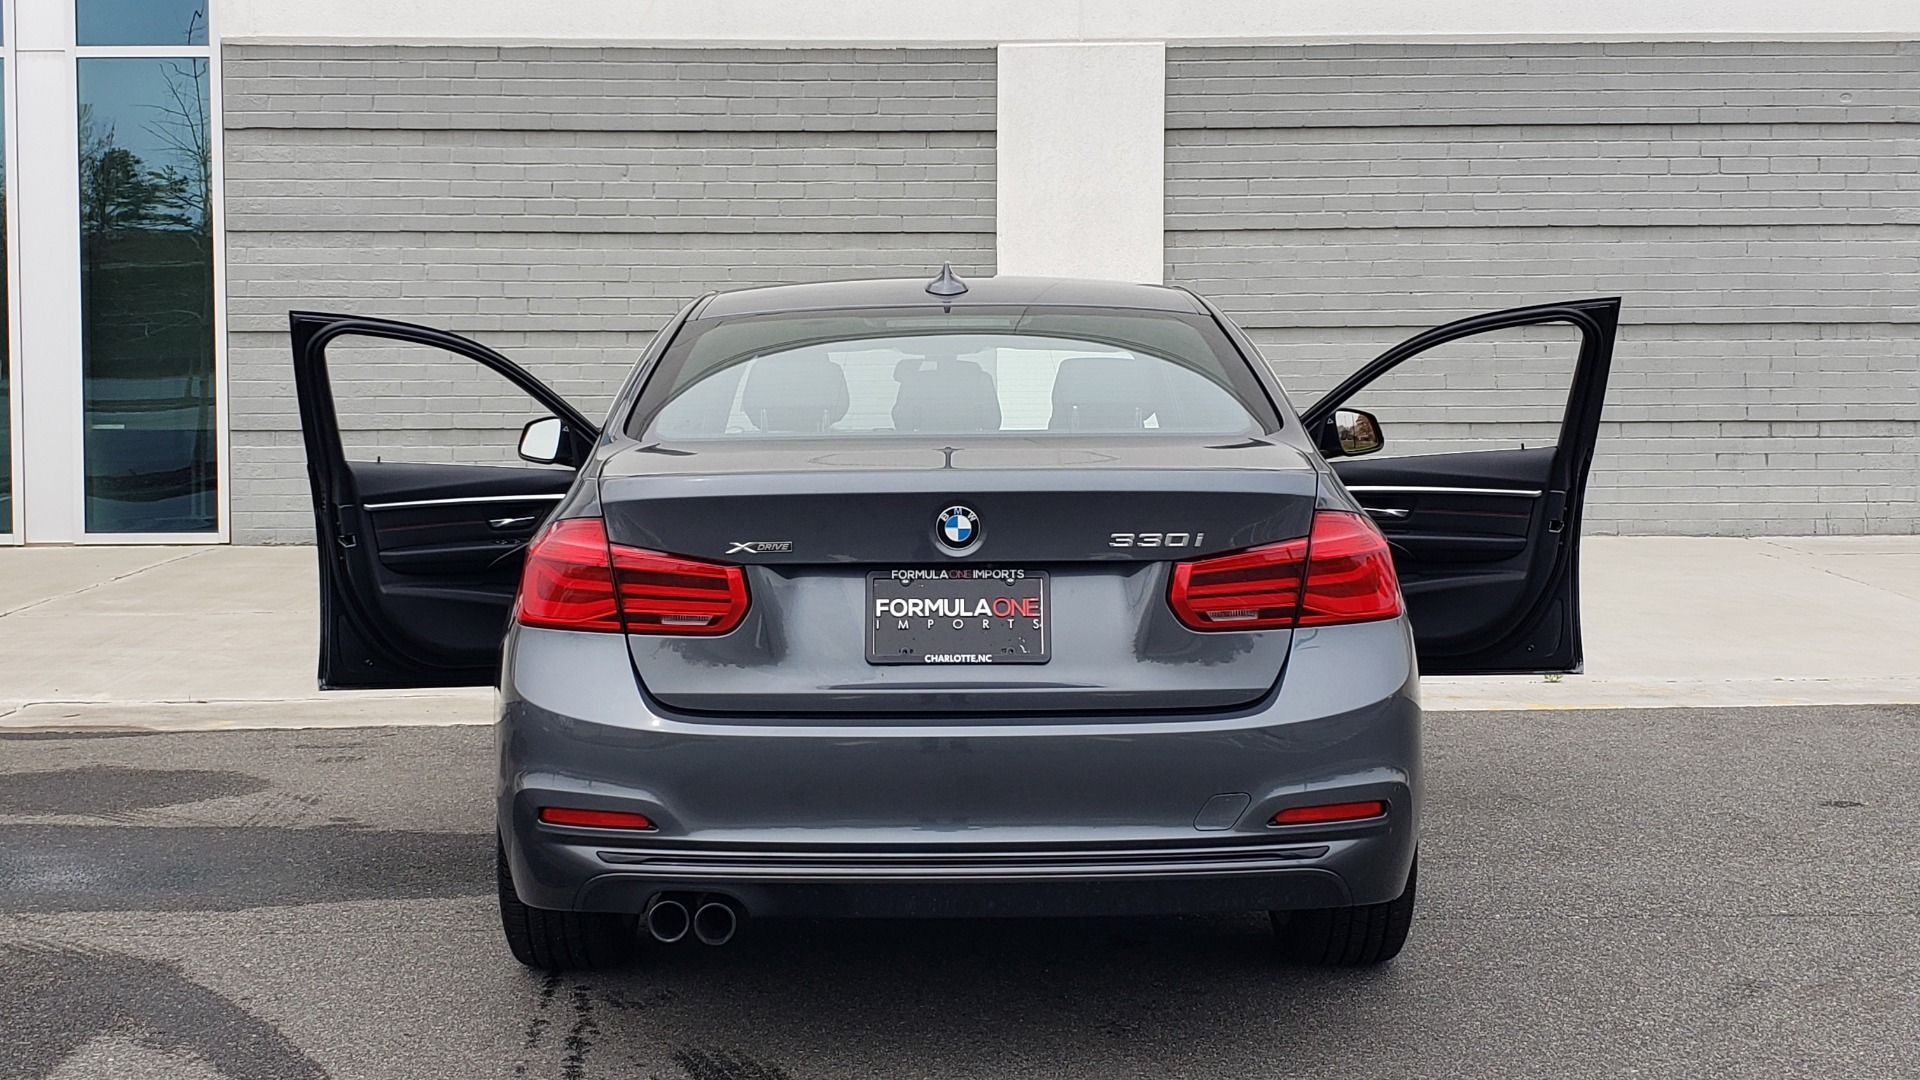 Used 2018 BMW 3 SERIES 330I XDRIVE PREMIUM / CONV PKG NAV / BLIND SPOT / HTD STS / REARVIEW for sale $22,695 at Formula Imports in Charlotte NC 28227 27